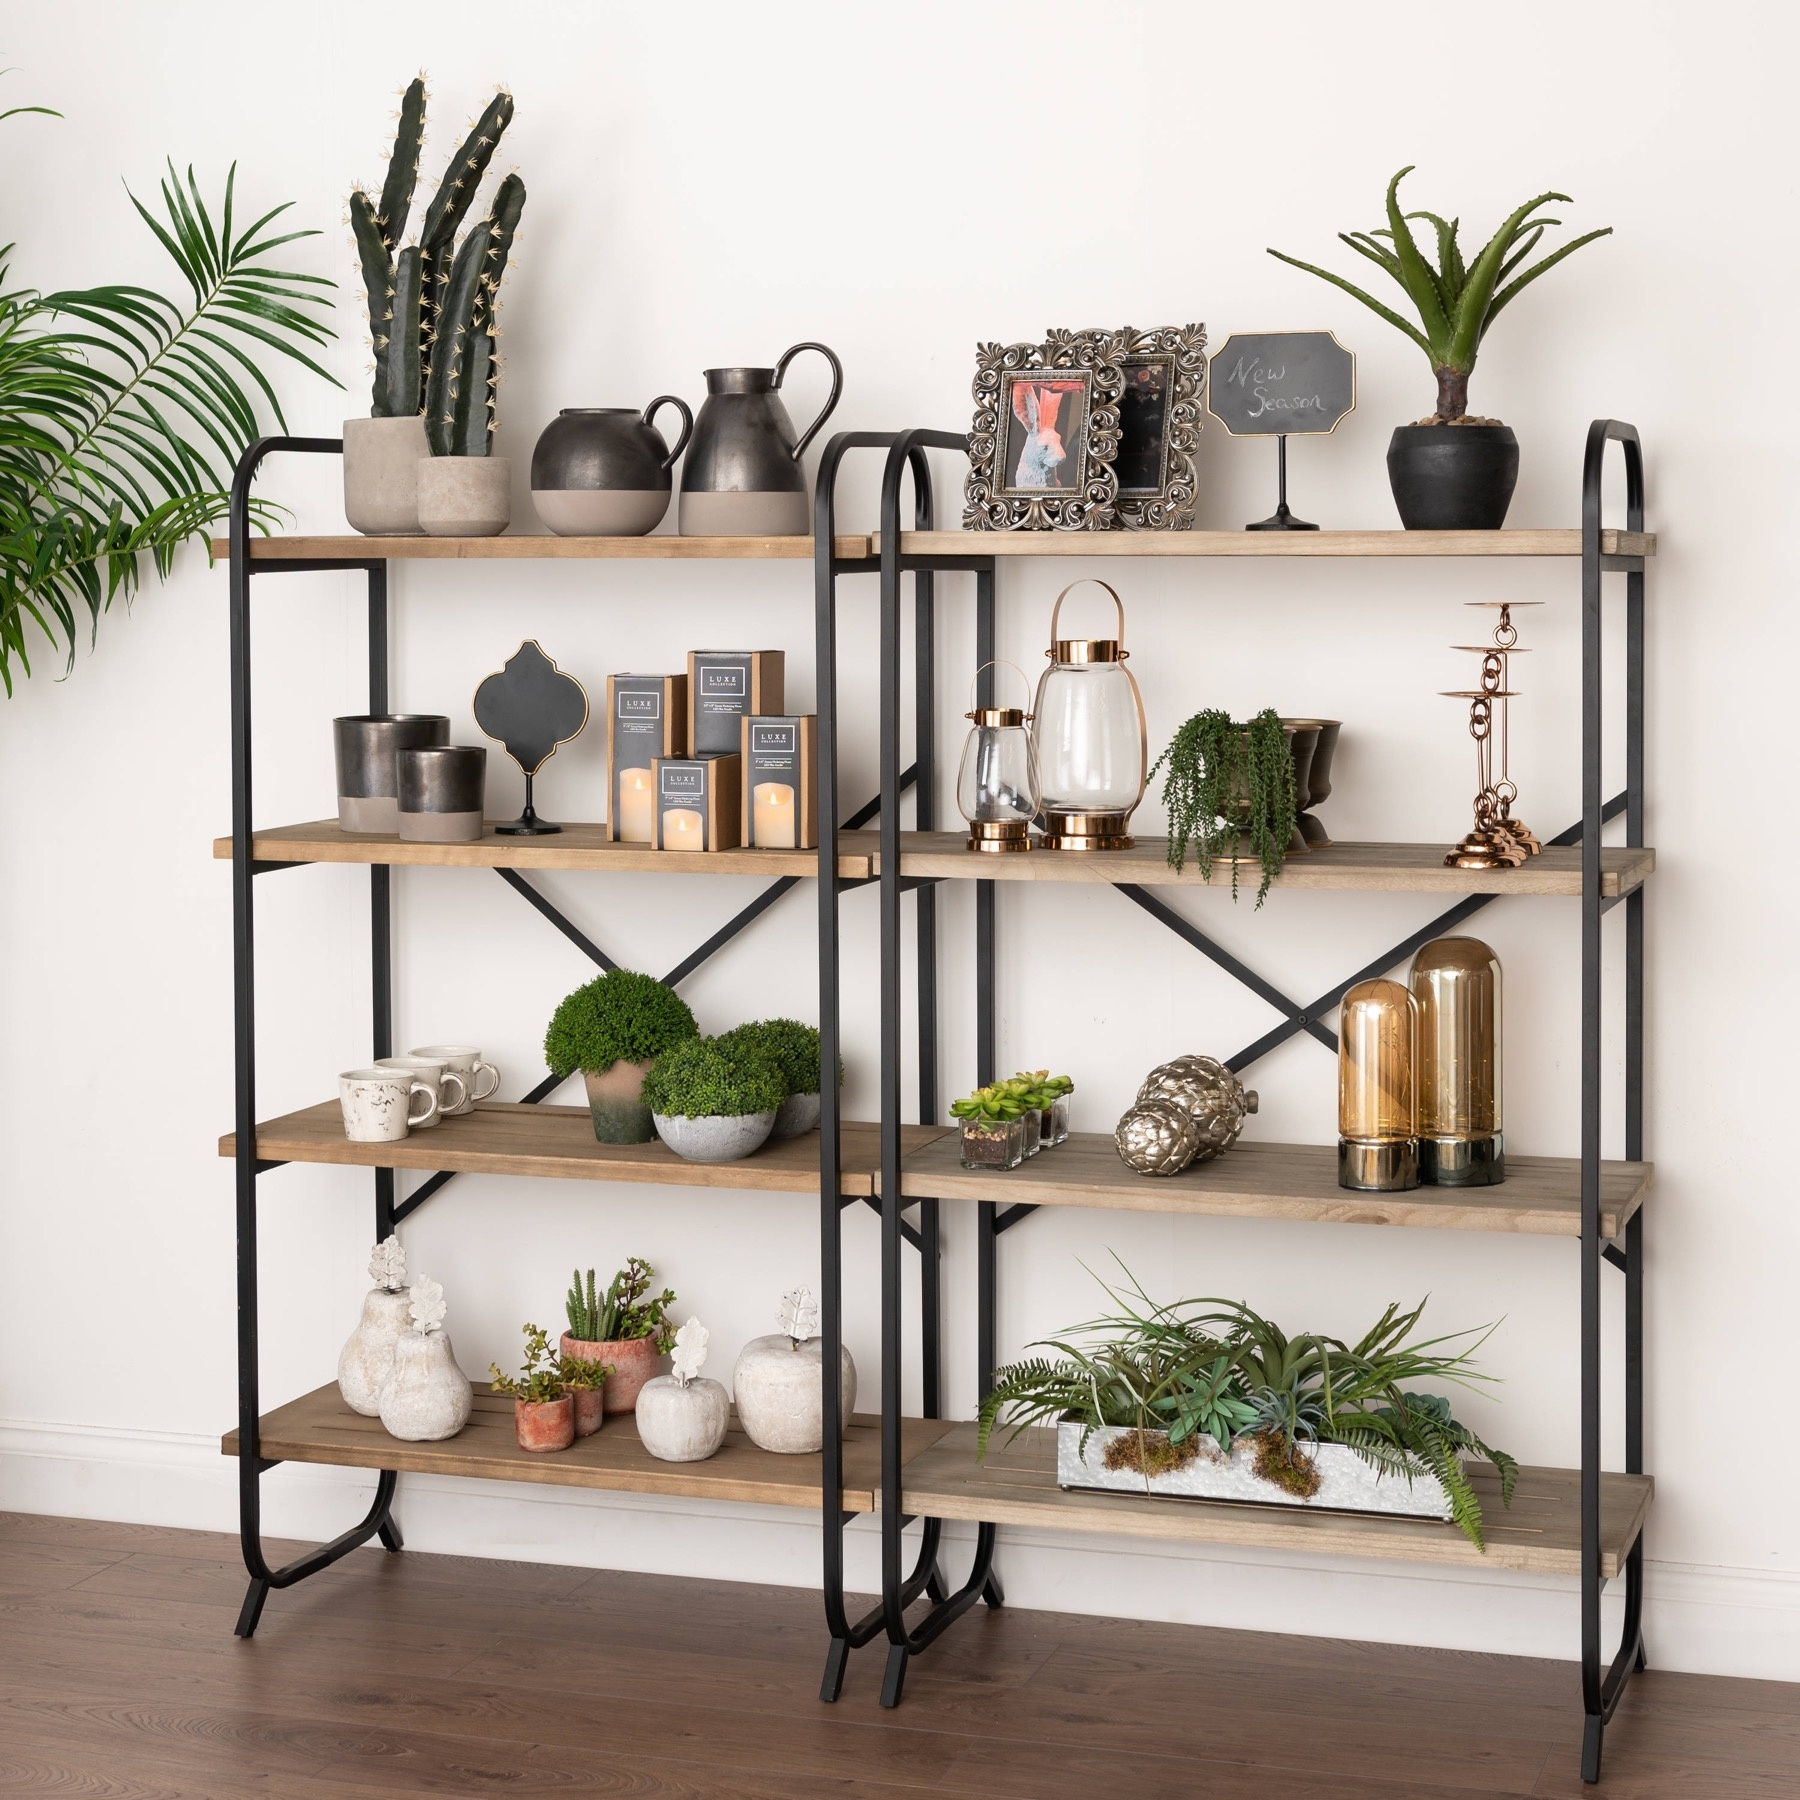 Hill Interiors Industrial Four Tier Shelf Cross Section Display Unit